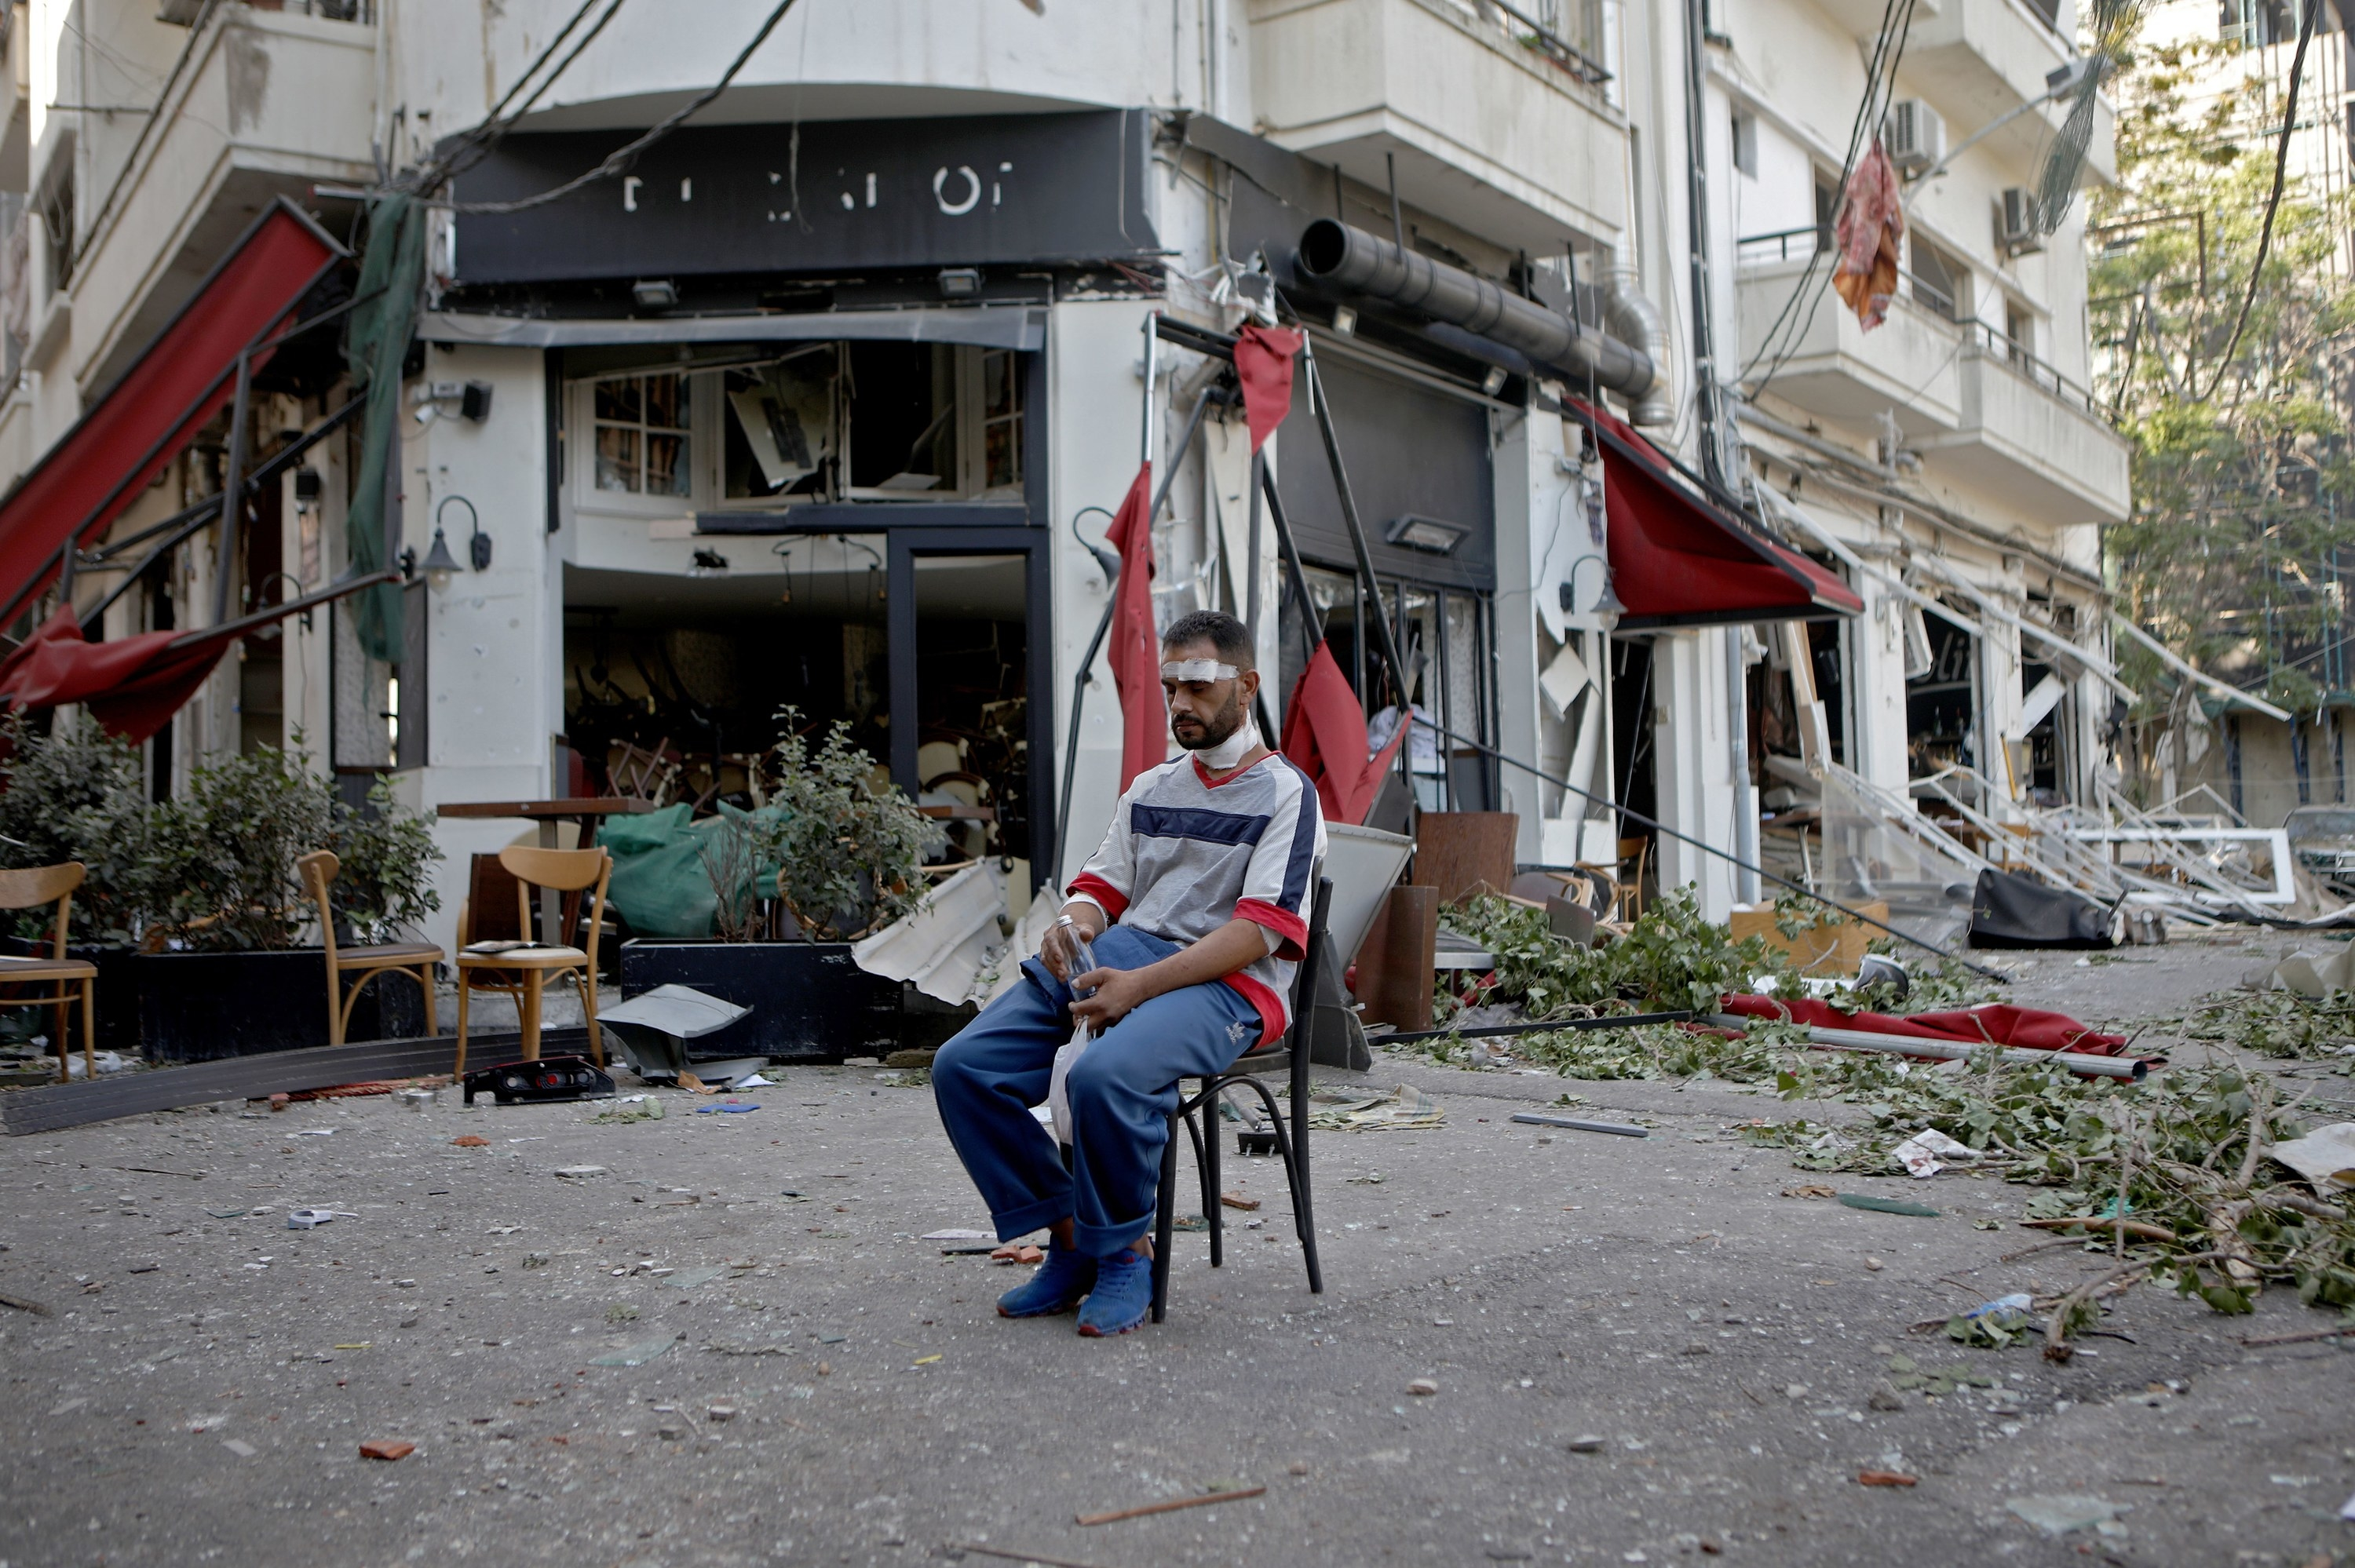 A man with a bandaged head sits alone in the middle of a destroyed street